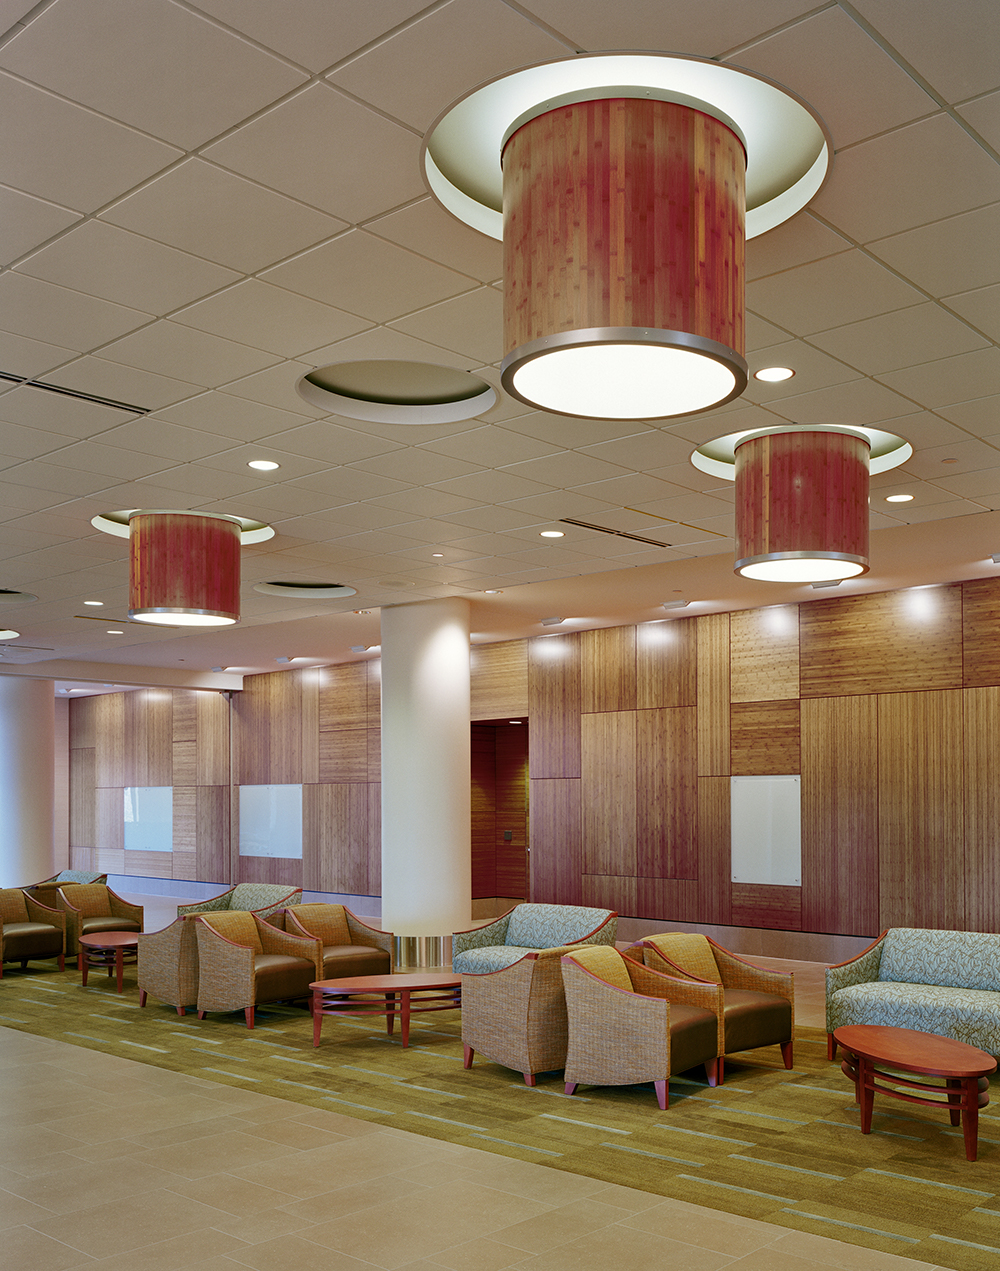 Large, wood-paneled custom light fixtures mounted above a warm waiting room.